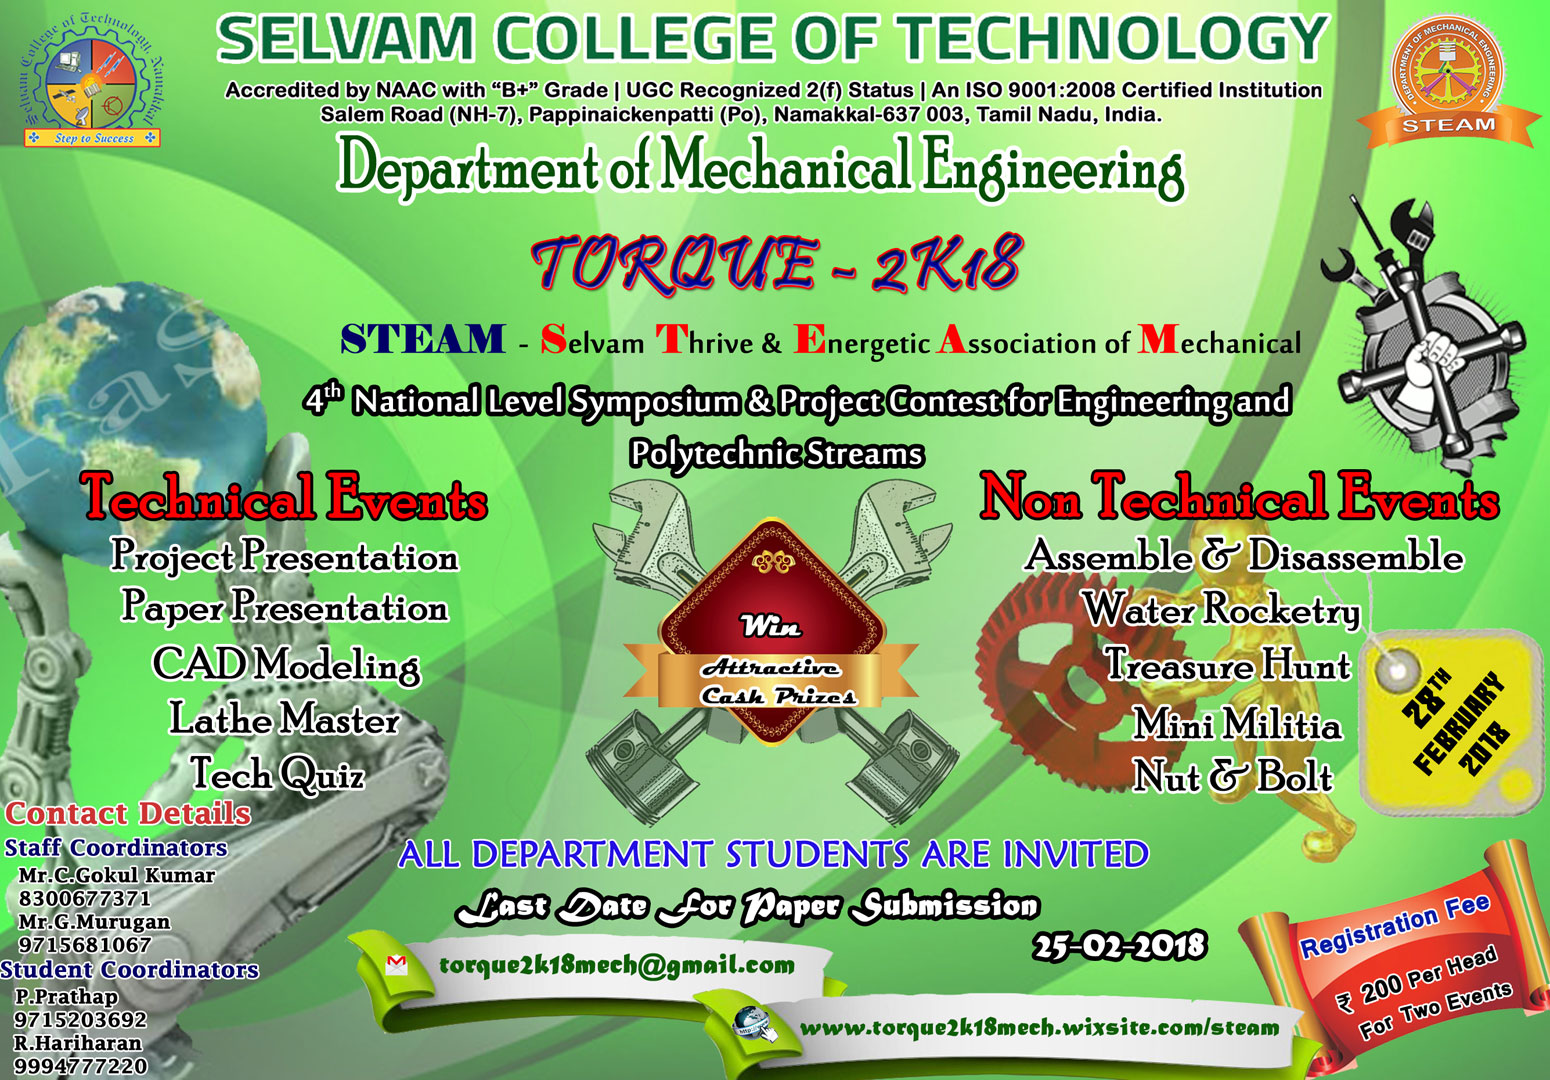 National Level Technical Symposium & Project Contest. 3